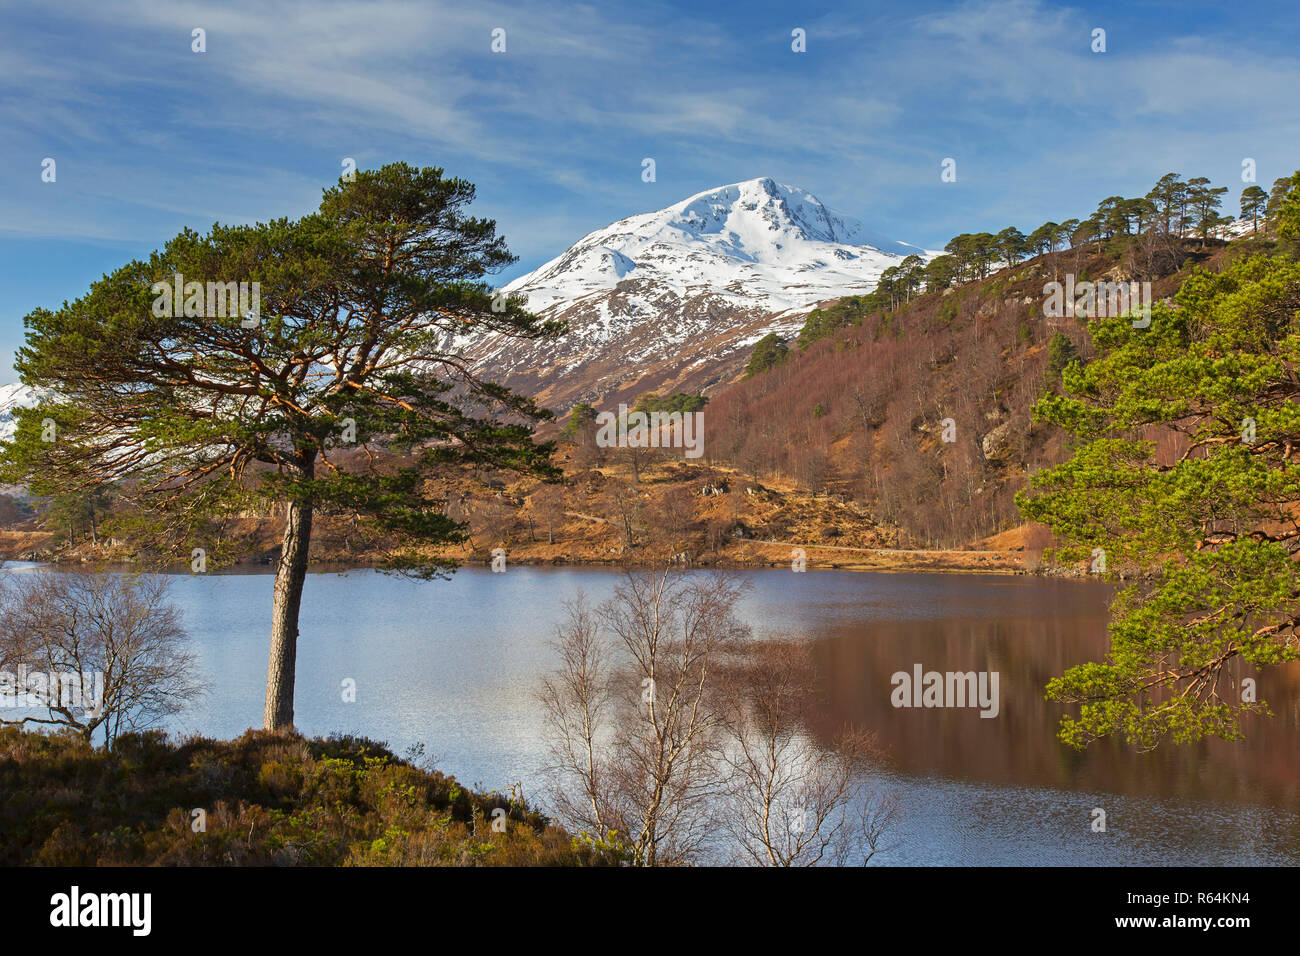 Scots pine (Pinus sylvestris) of Caledonian Forest along Loch Affric in winter, Glen Affric, Inverness-shire, Scottish Highlands, Highland, Scotland - Stock Image